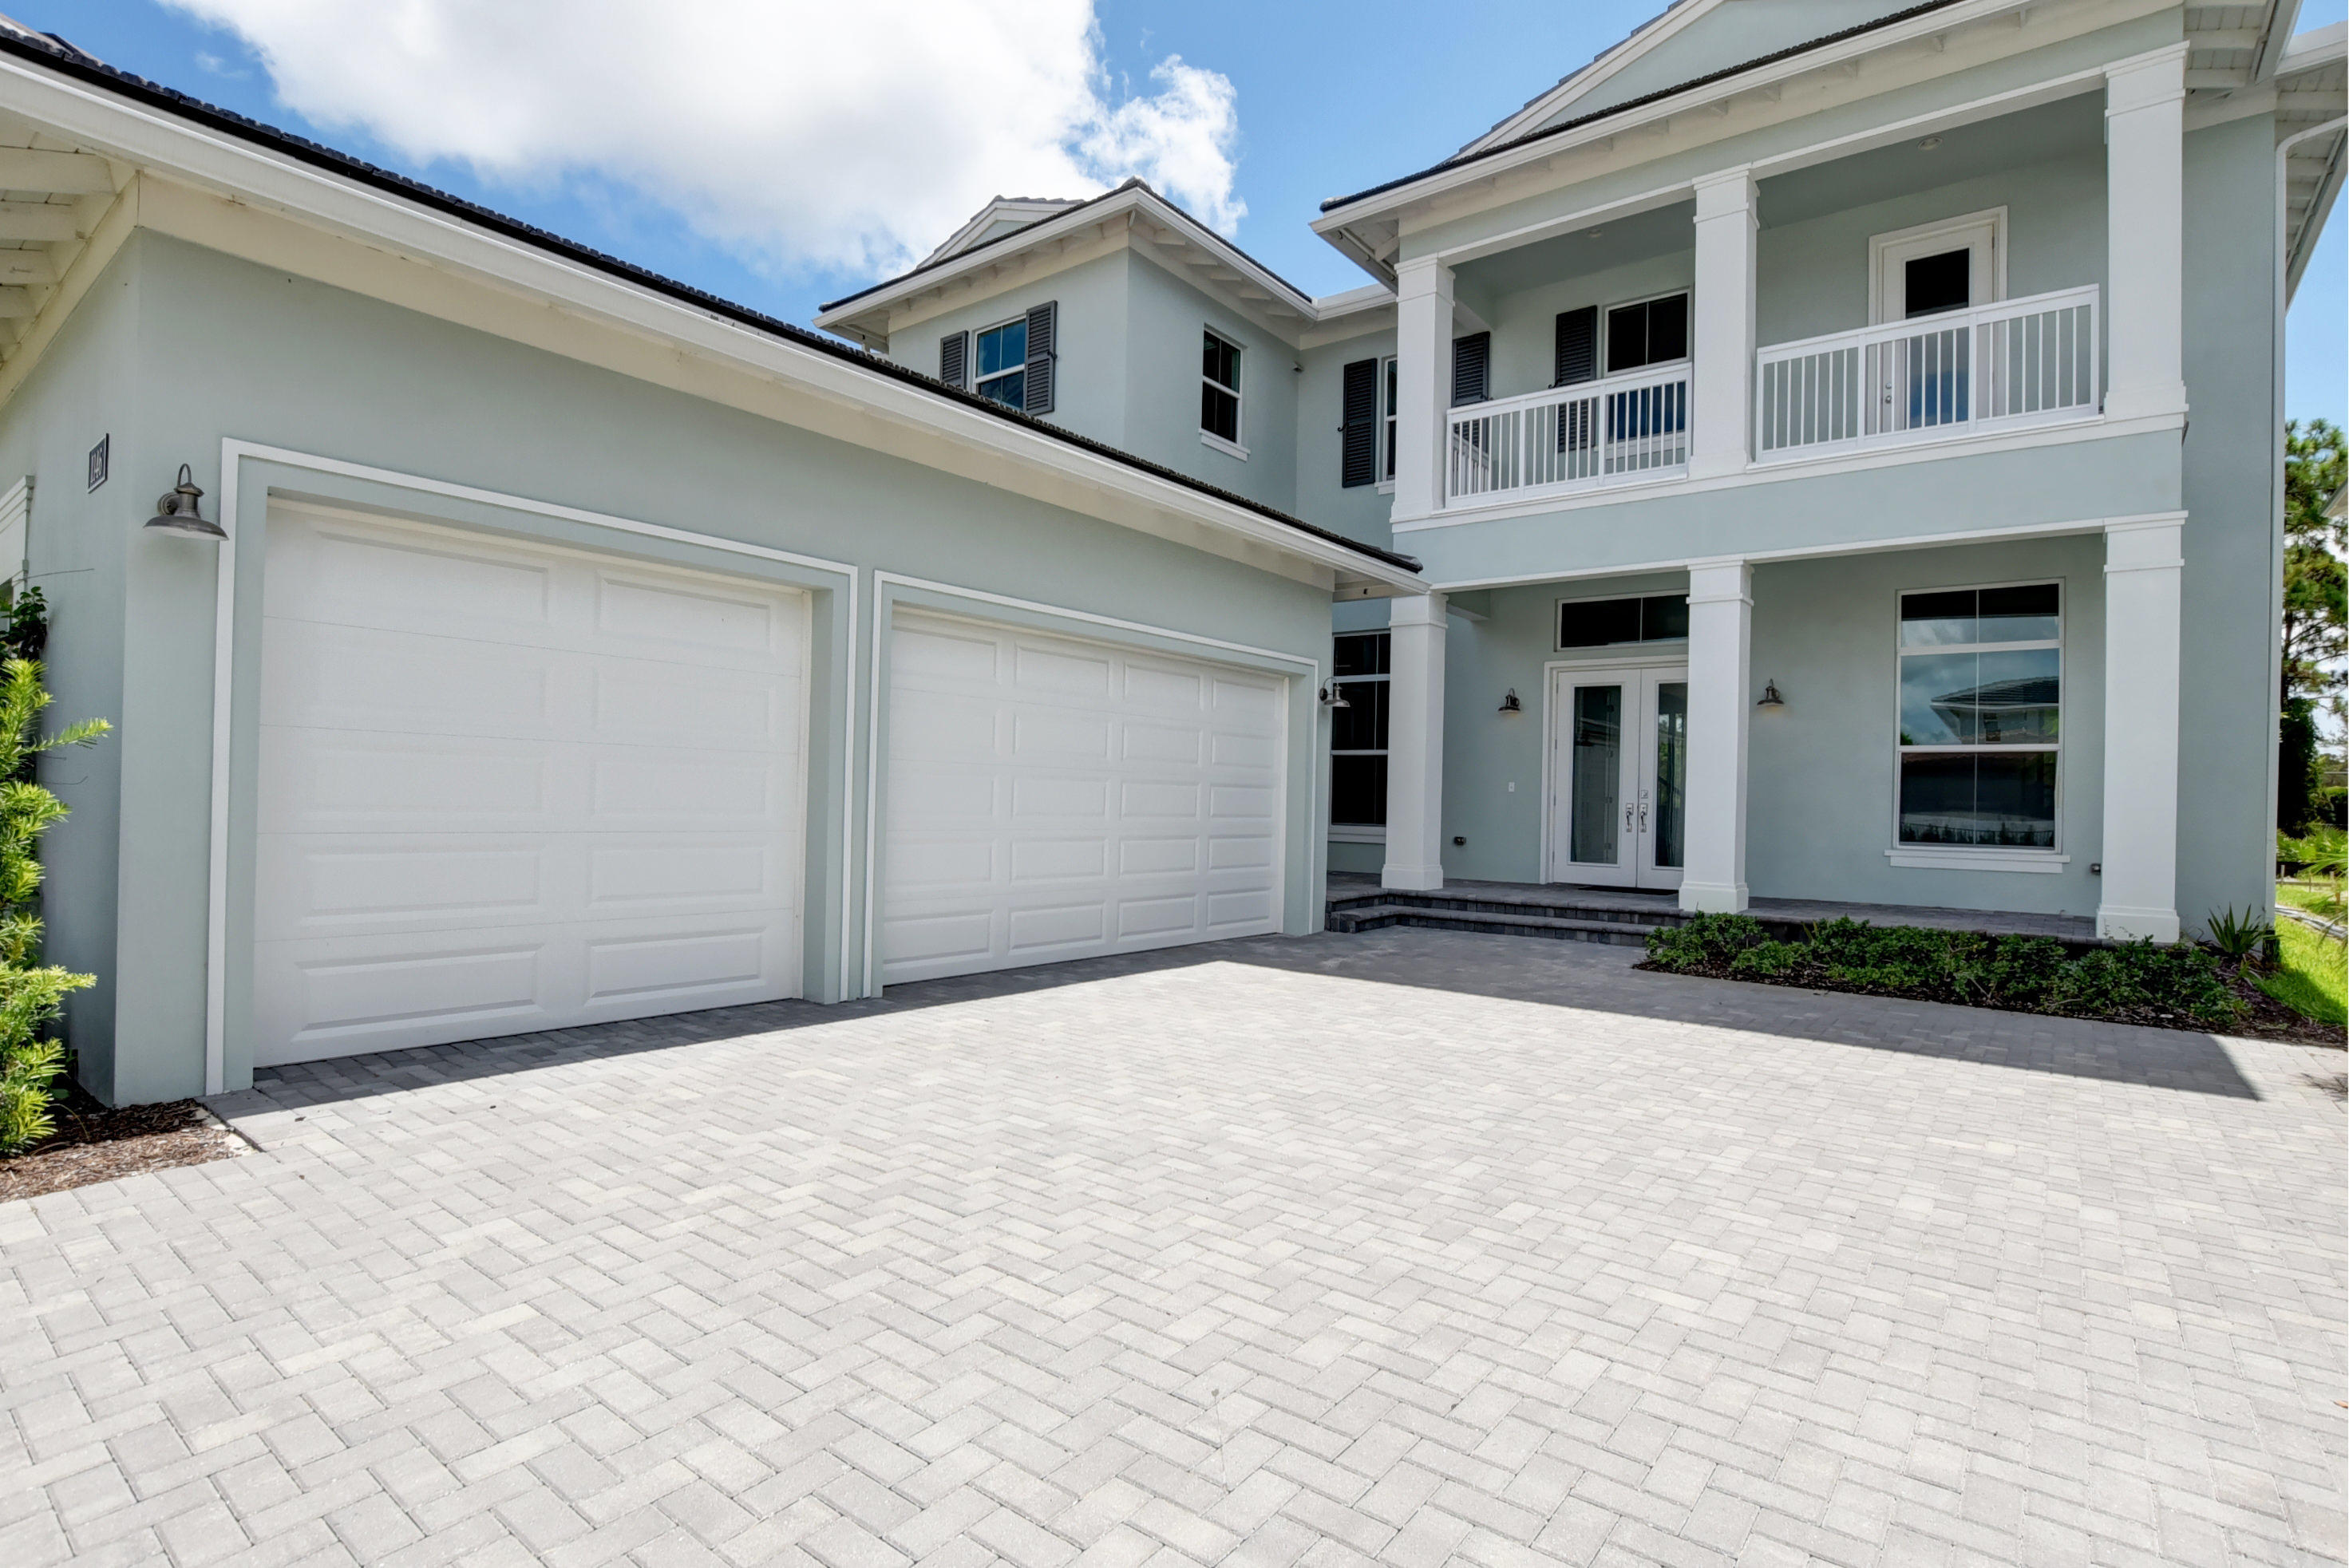 New Home for sale at 1146 Faulkner Terrace in Palm Beach Gardens